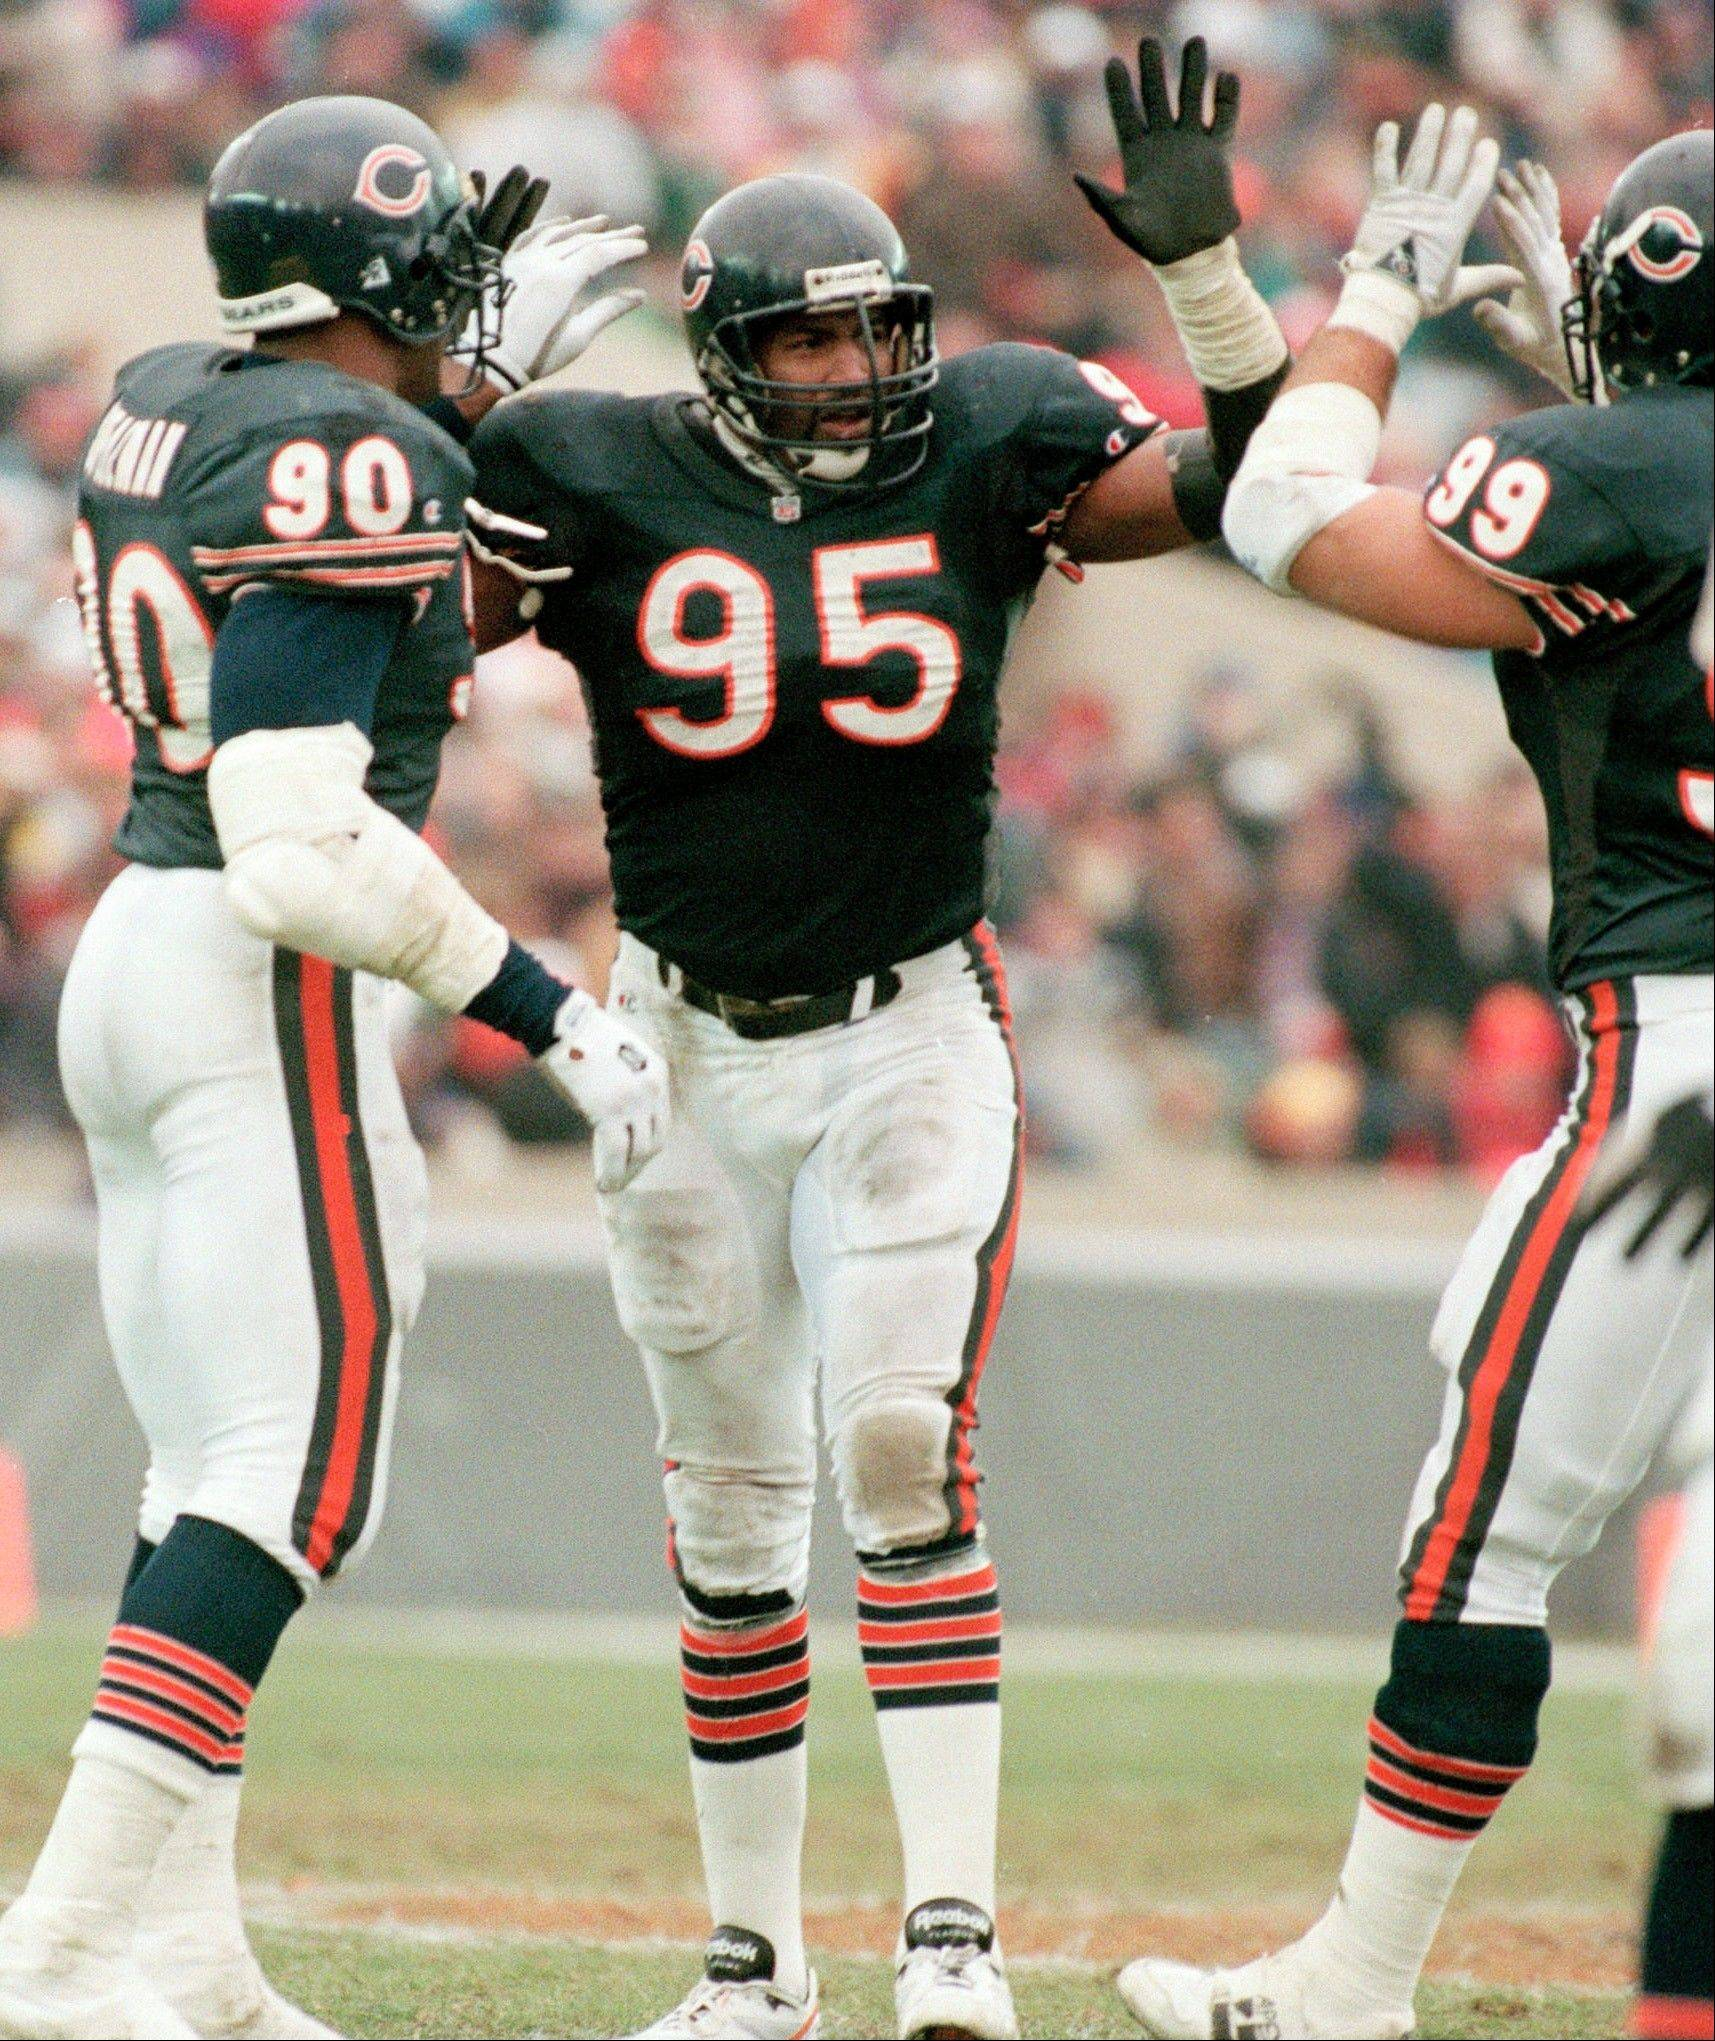 "Richard Dent, center, a member of the legendary 1985 Chicago Bears' defense, talks about his playing days, his teammates and changes in the game in his book ""Blood, Sweat and Bears."" He'll discuss the book and his career Dec. 8 in Naperville."